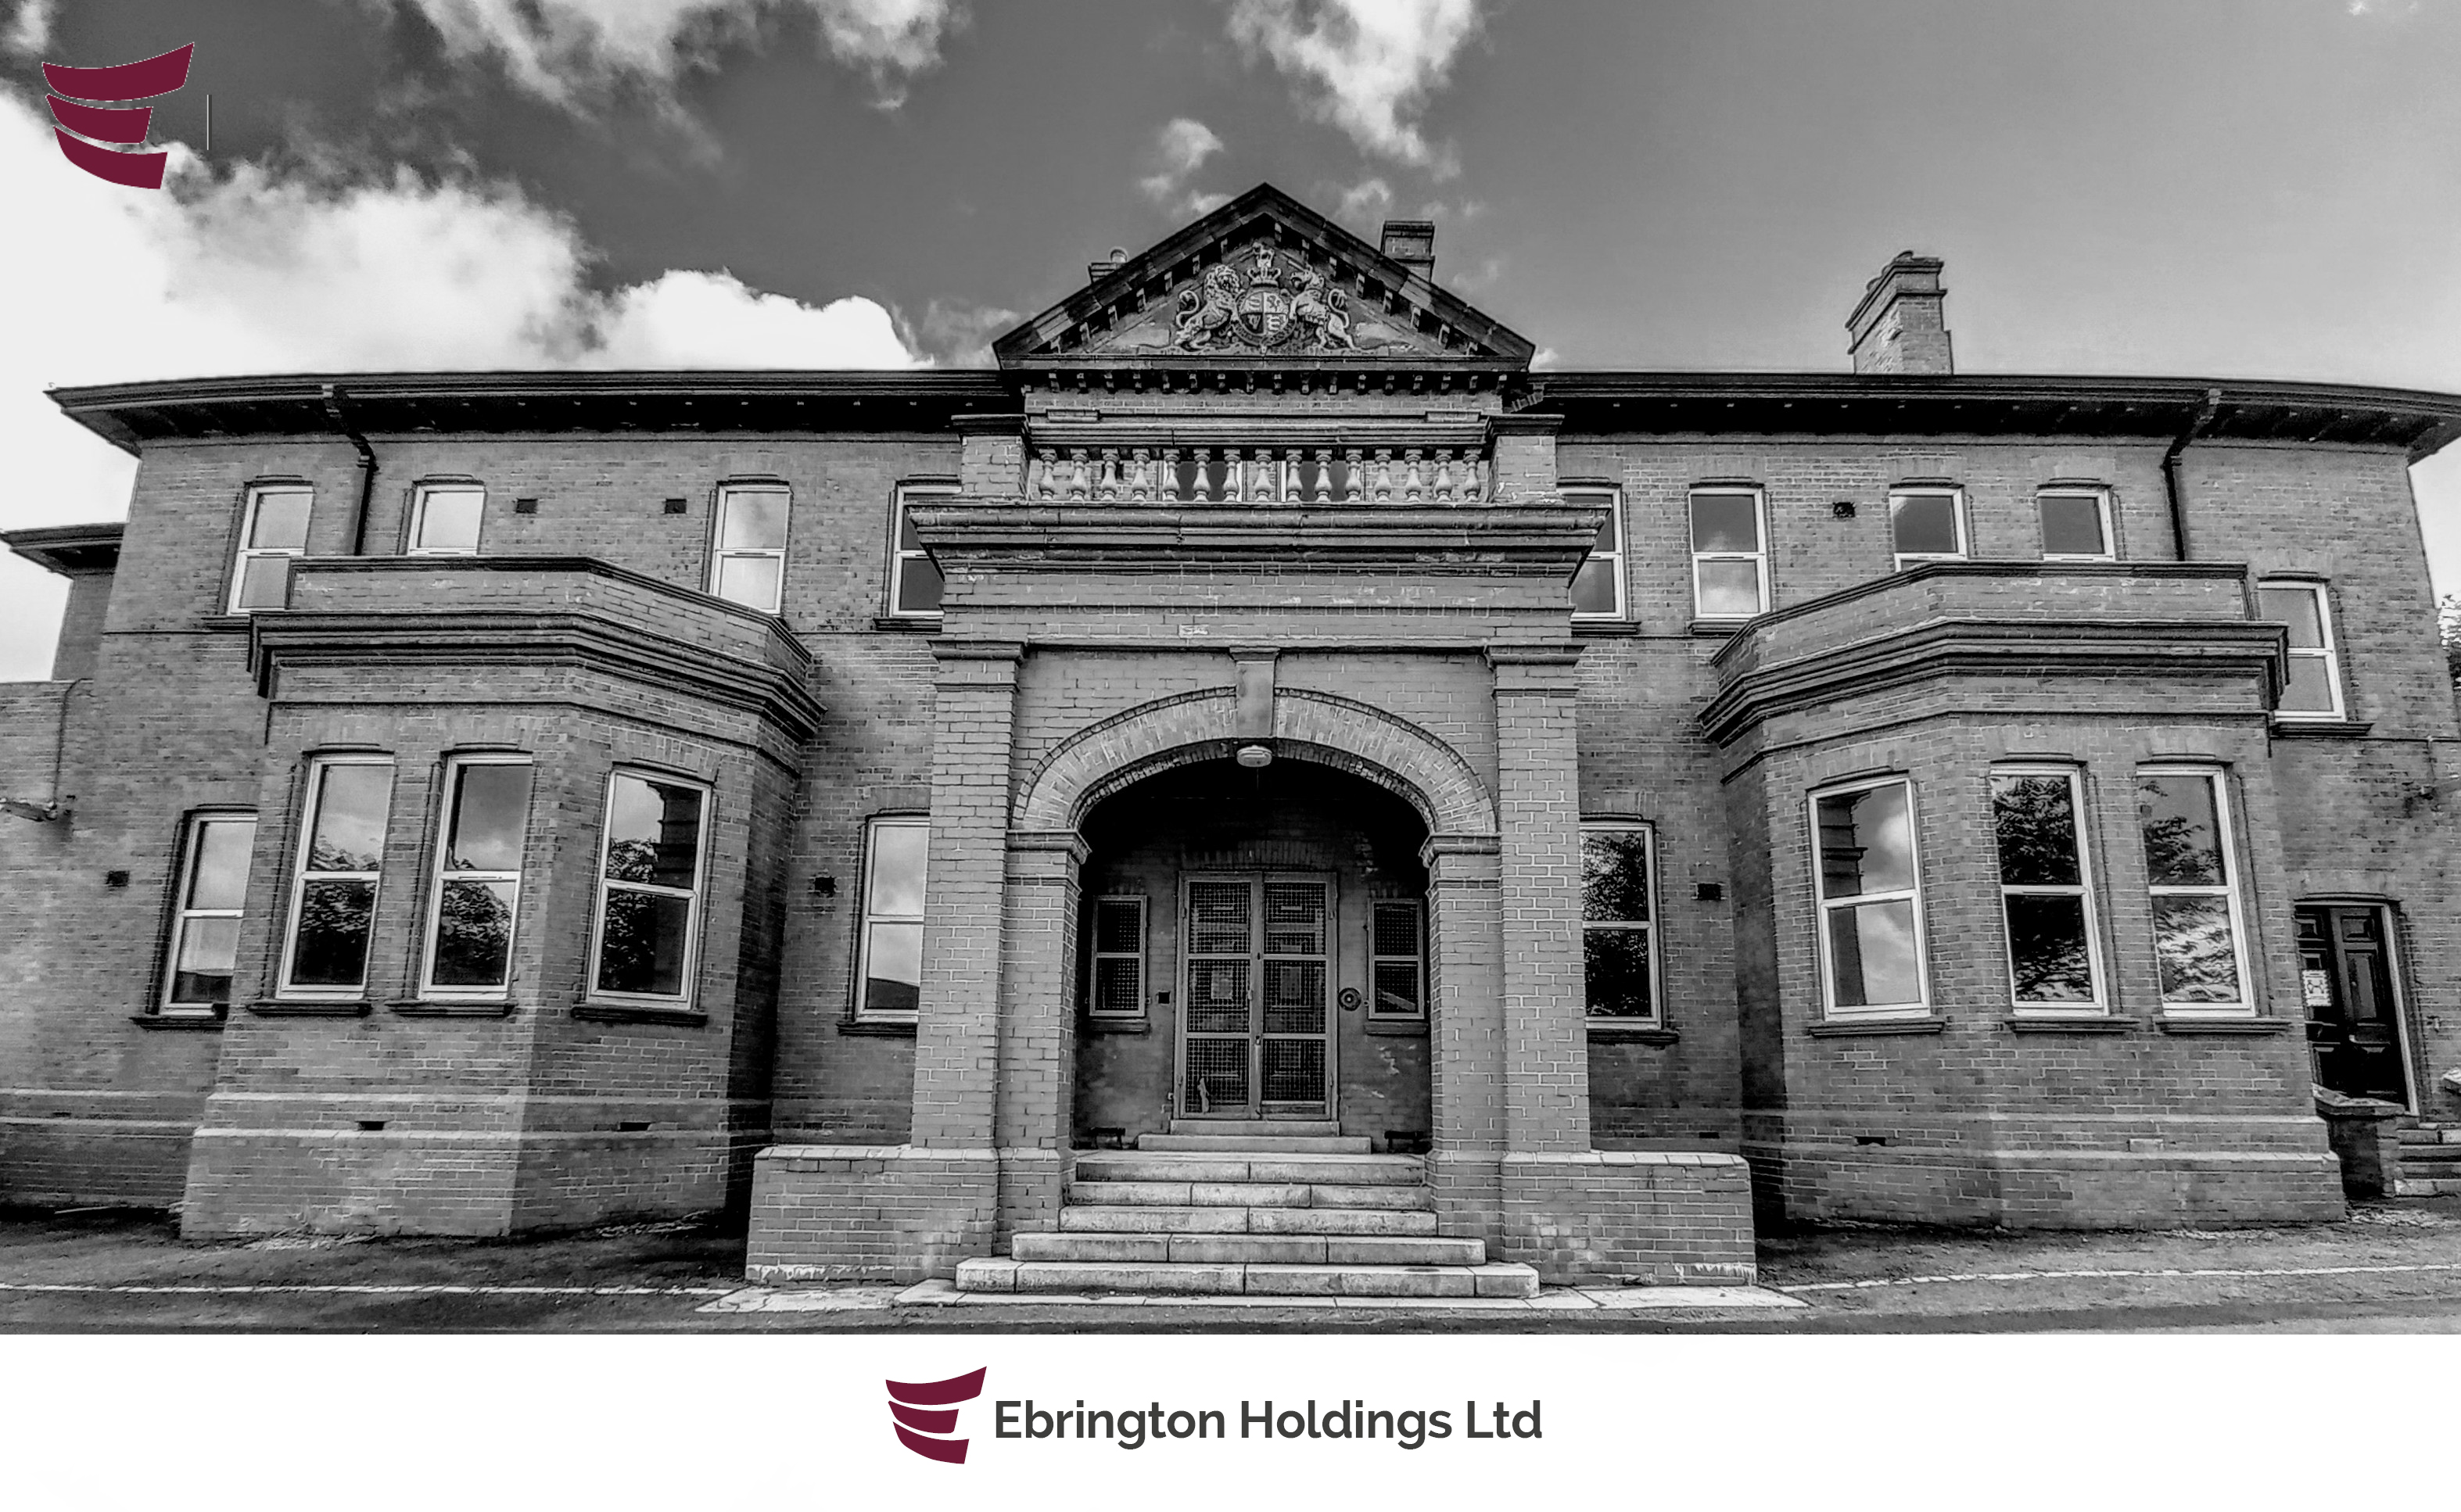 Plannning Application Submitted for Building 85